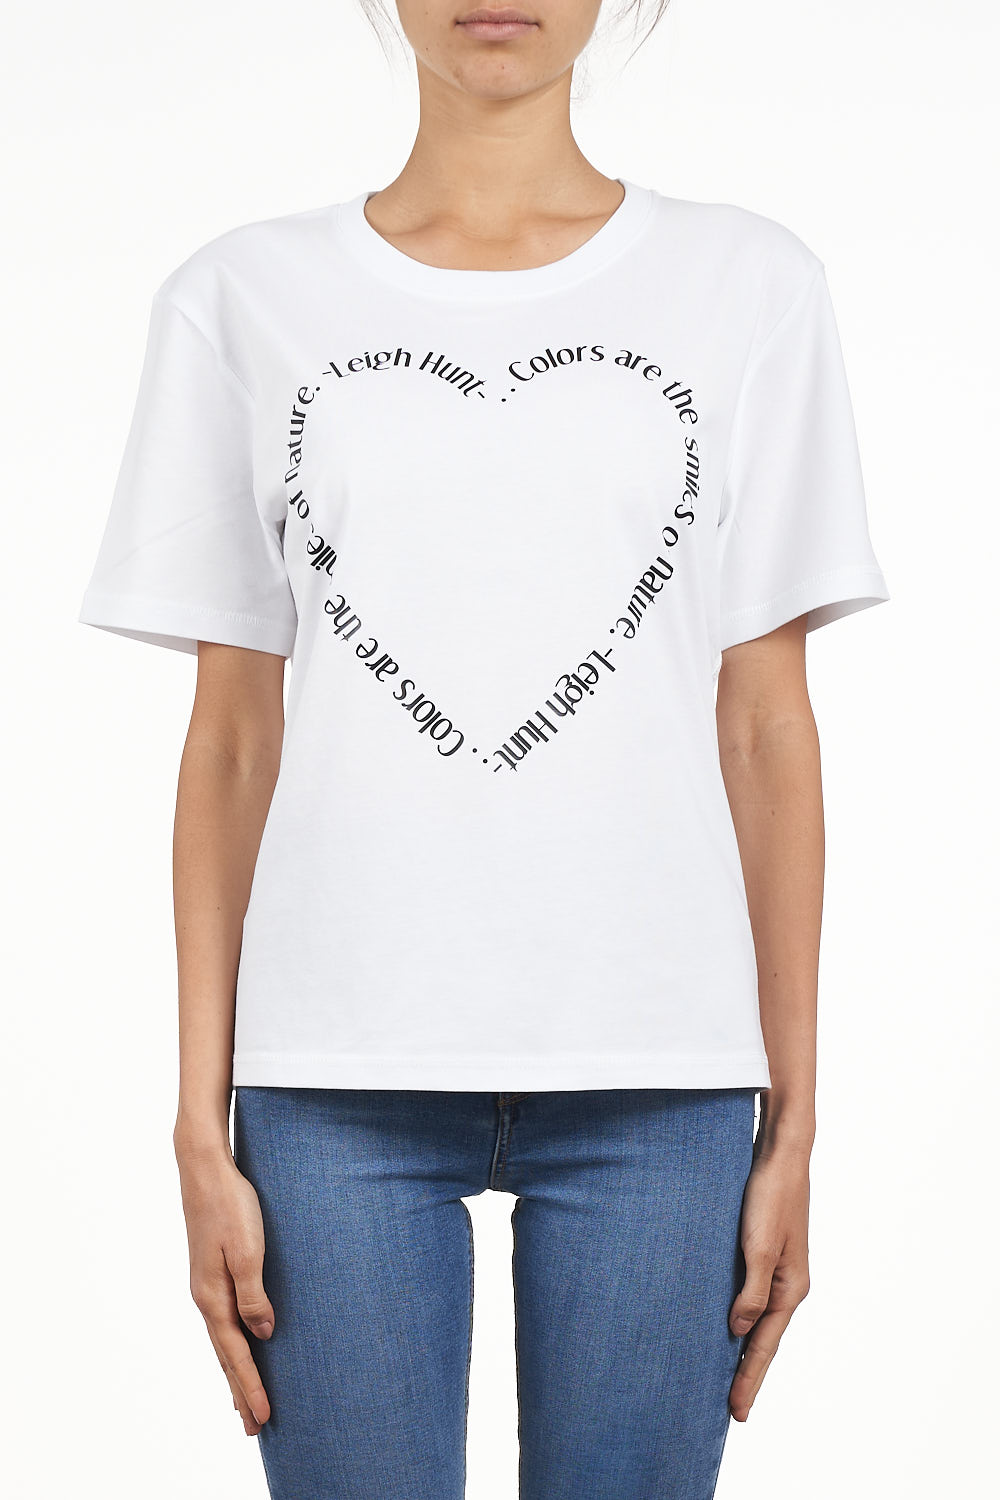 "SETTEPUNTOZERO T-shirt | love | T-shirt with heart | ""colors are the smile of nature"" slogan"